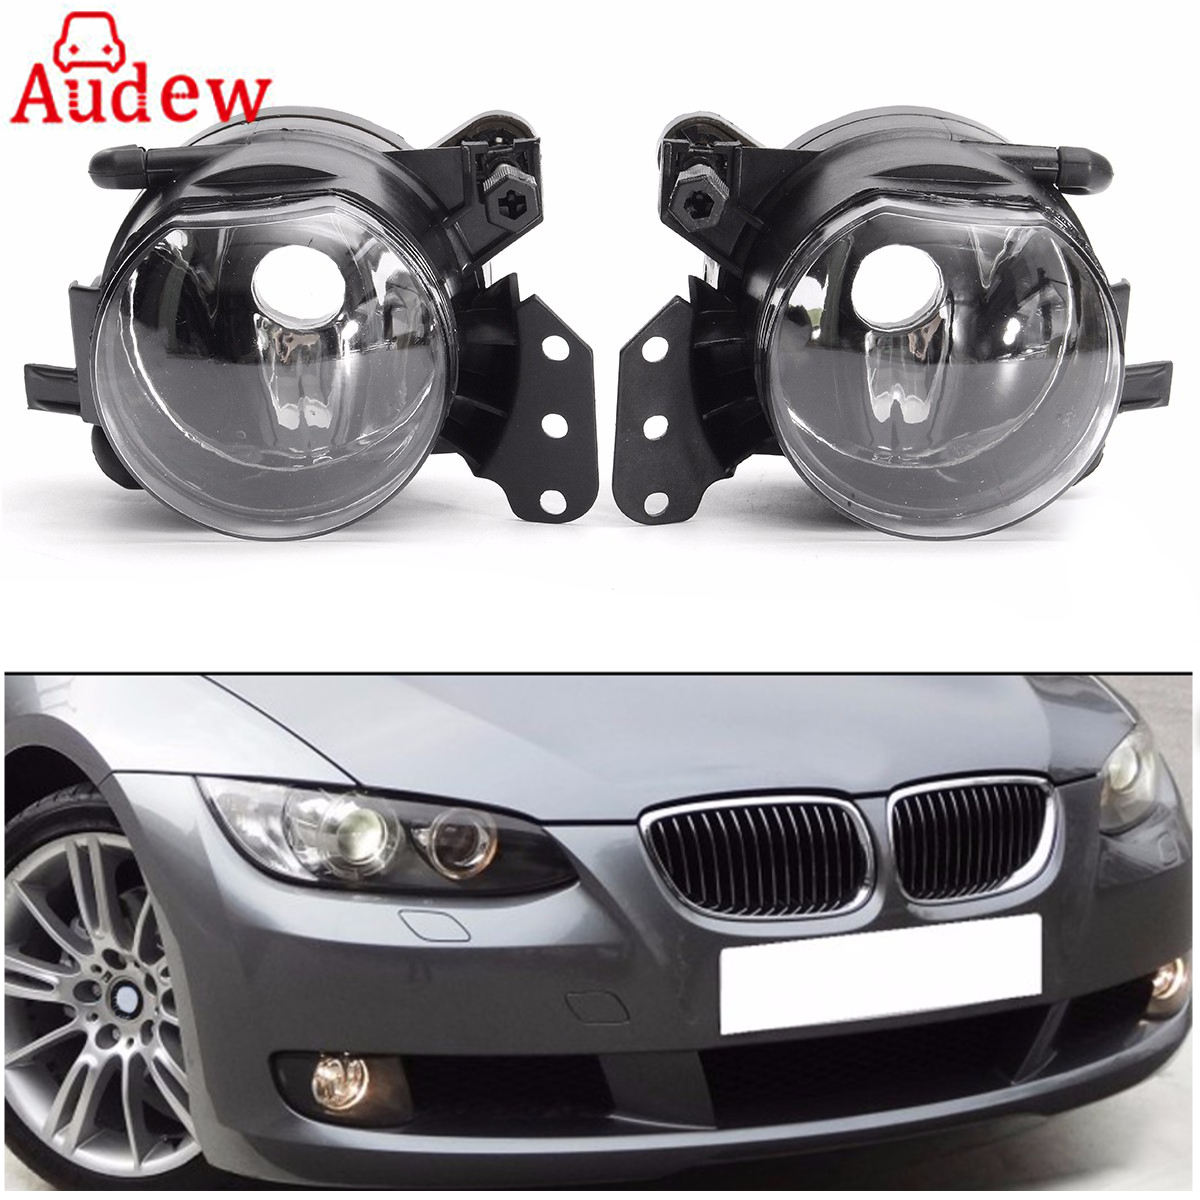 1Pair Fog Light Assembly Car Front Fog Lights Lamps Housing Lens Clear No Bulbs For BMW E60 E90 E63 E46 323i 325i 525i fit for 04 05 06 07 08 bmw e60 5 series fog lights front lamps clear lens pair set usa domestic free shipping